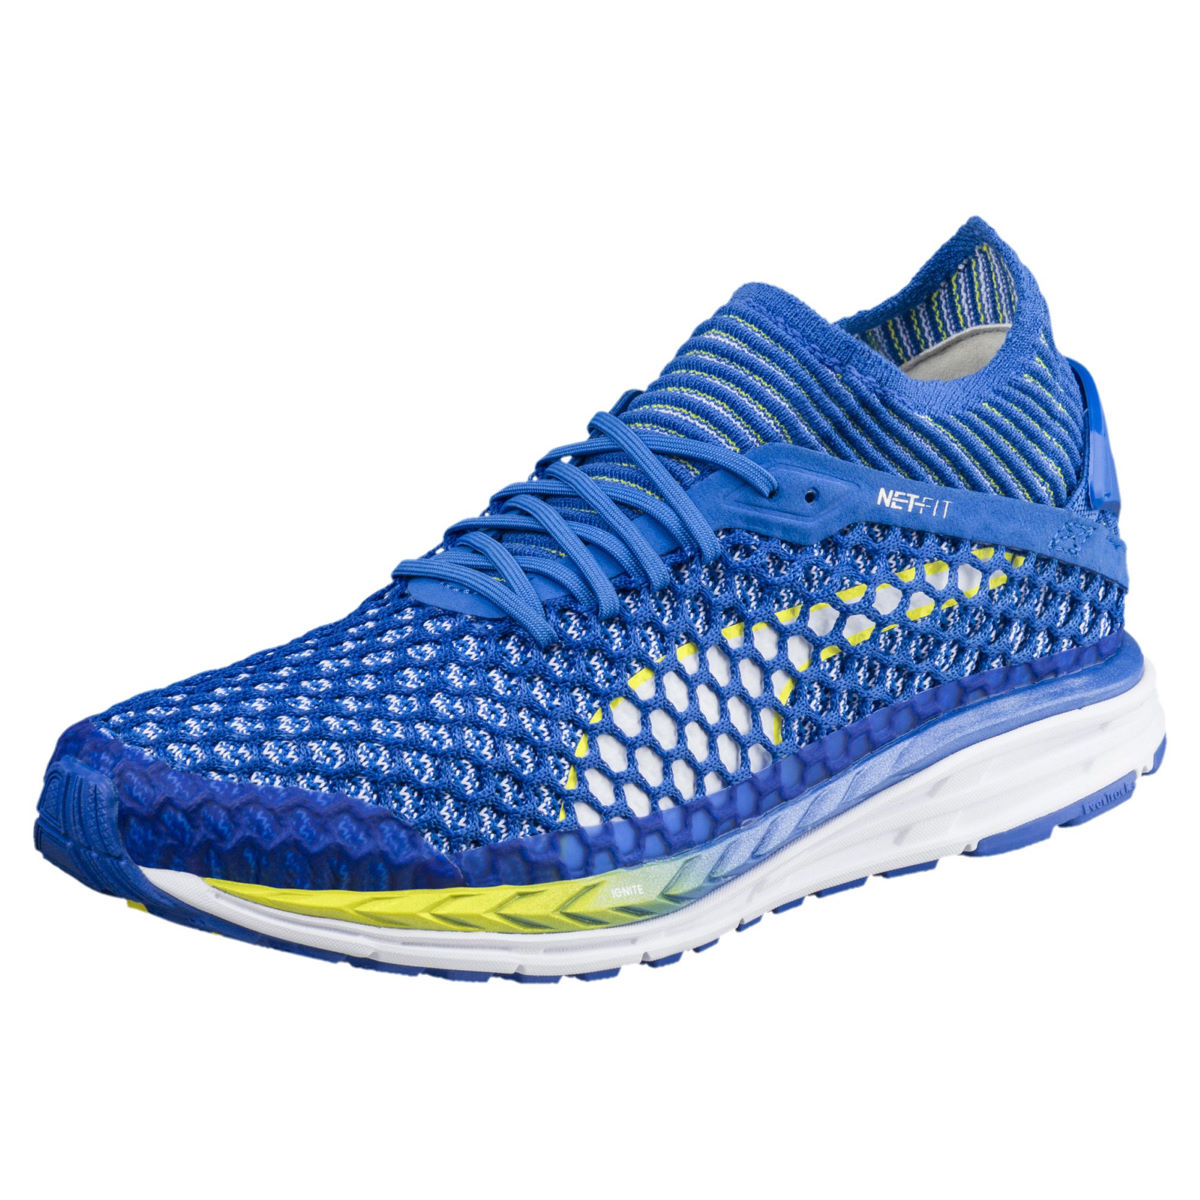 Chaussures Femme Puma Speed Ignite Netfit 2 - UK 6 blue-lemon-white